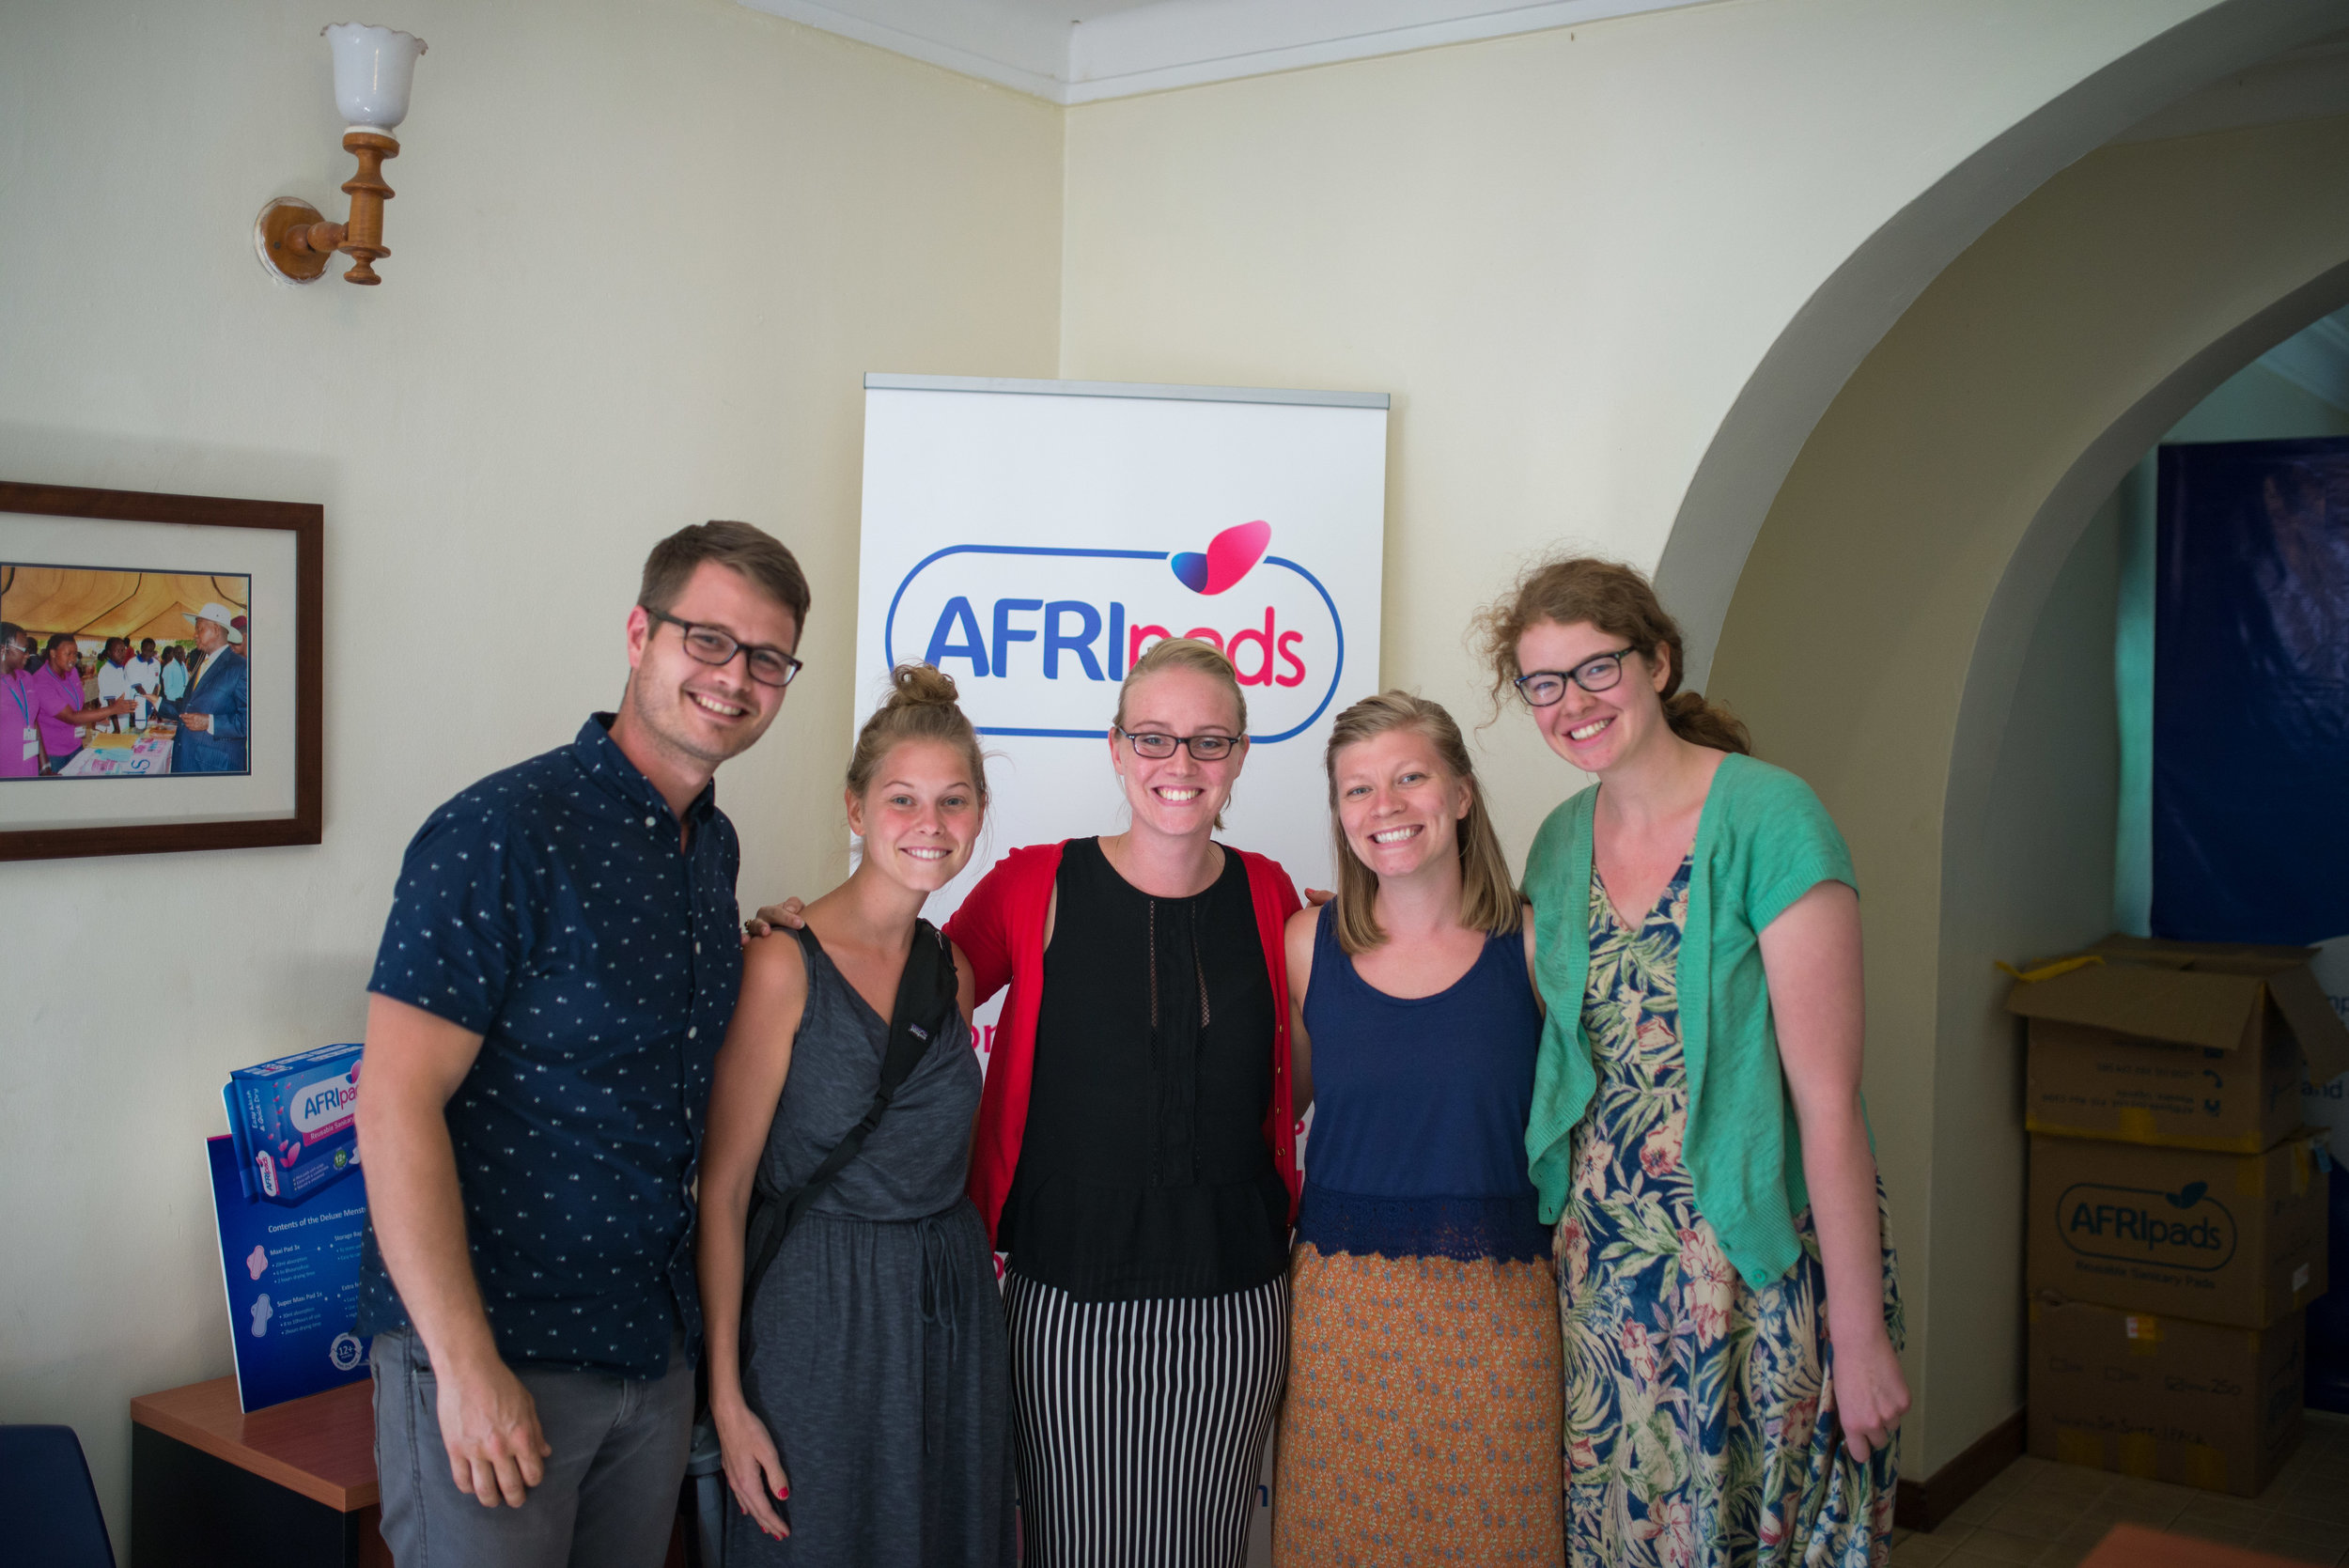 Cameron Kagay, lead manager of the East Africa regional team, along with immersion participants interested in textiles and health care, visited the AFRIpads headquarters and sat with leaders of their nonprofit.